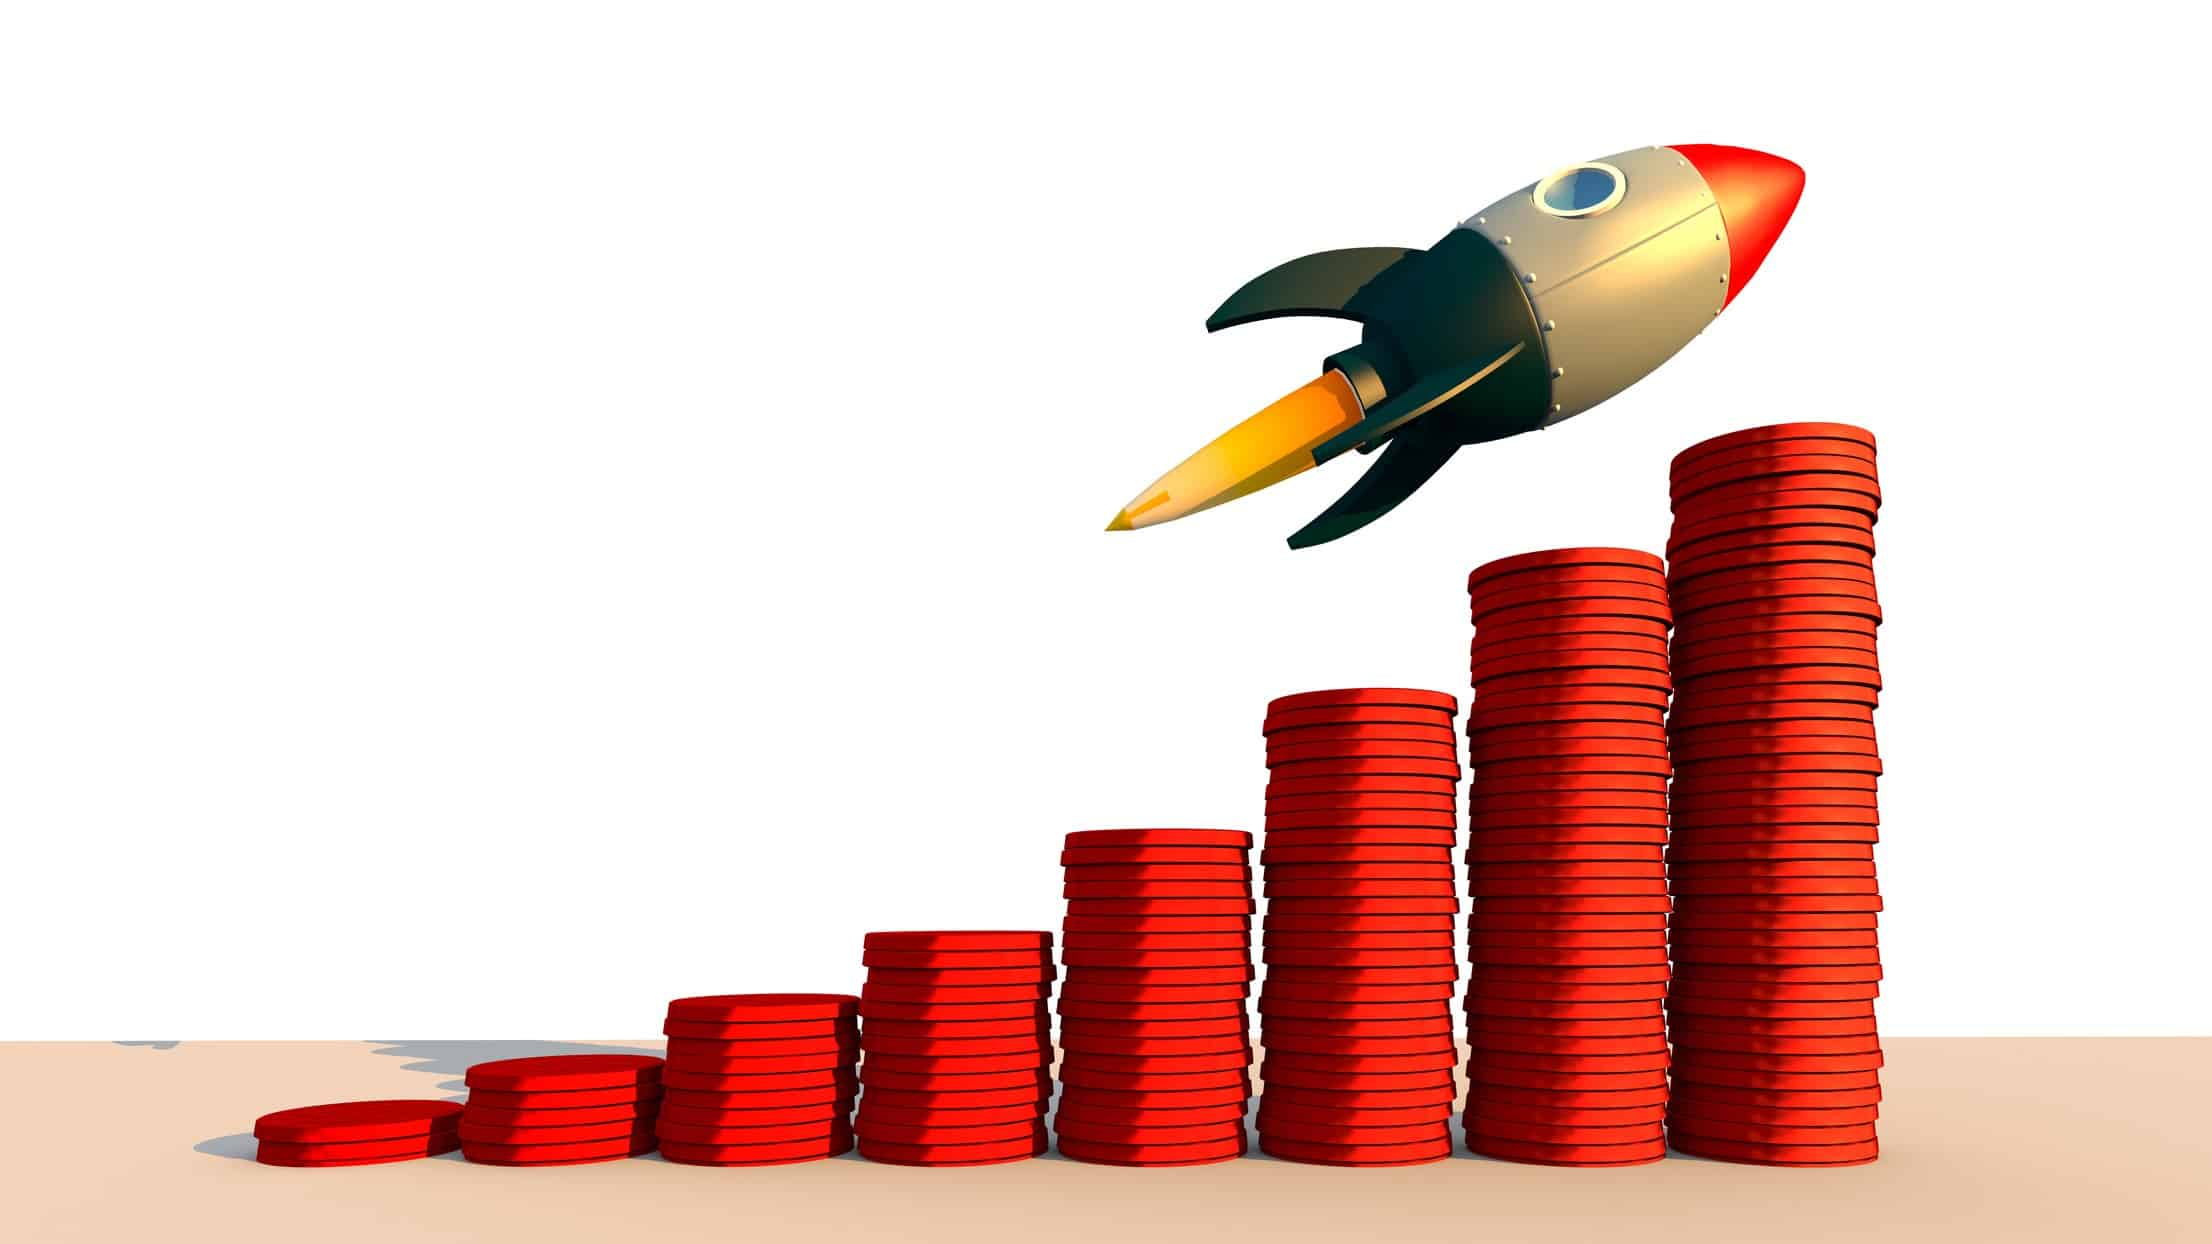 illustration of rocket ascending increasing piles of coins representing asx shares involved in space tech